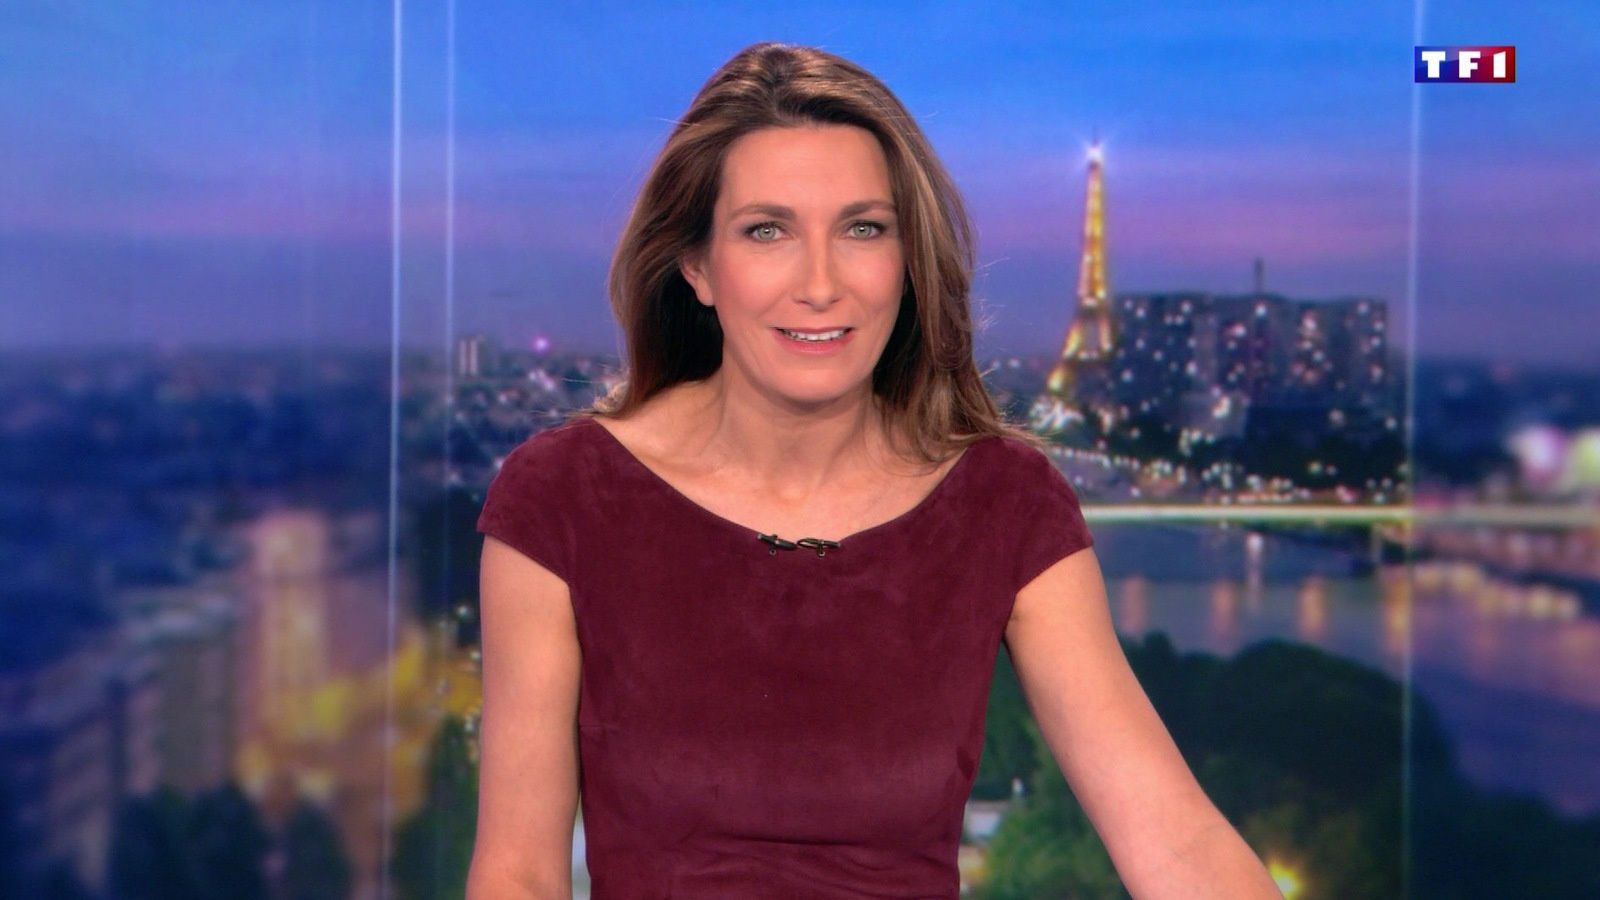 📸 ANNE-CLAIRE COUDRAY @ACCoudray @TF1 @TF1LeJT pour LE 20H WEEK-END #vuesalatele